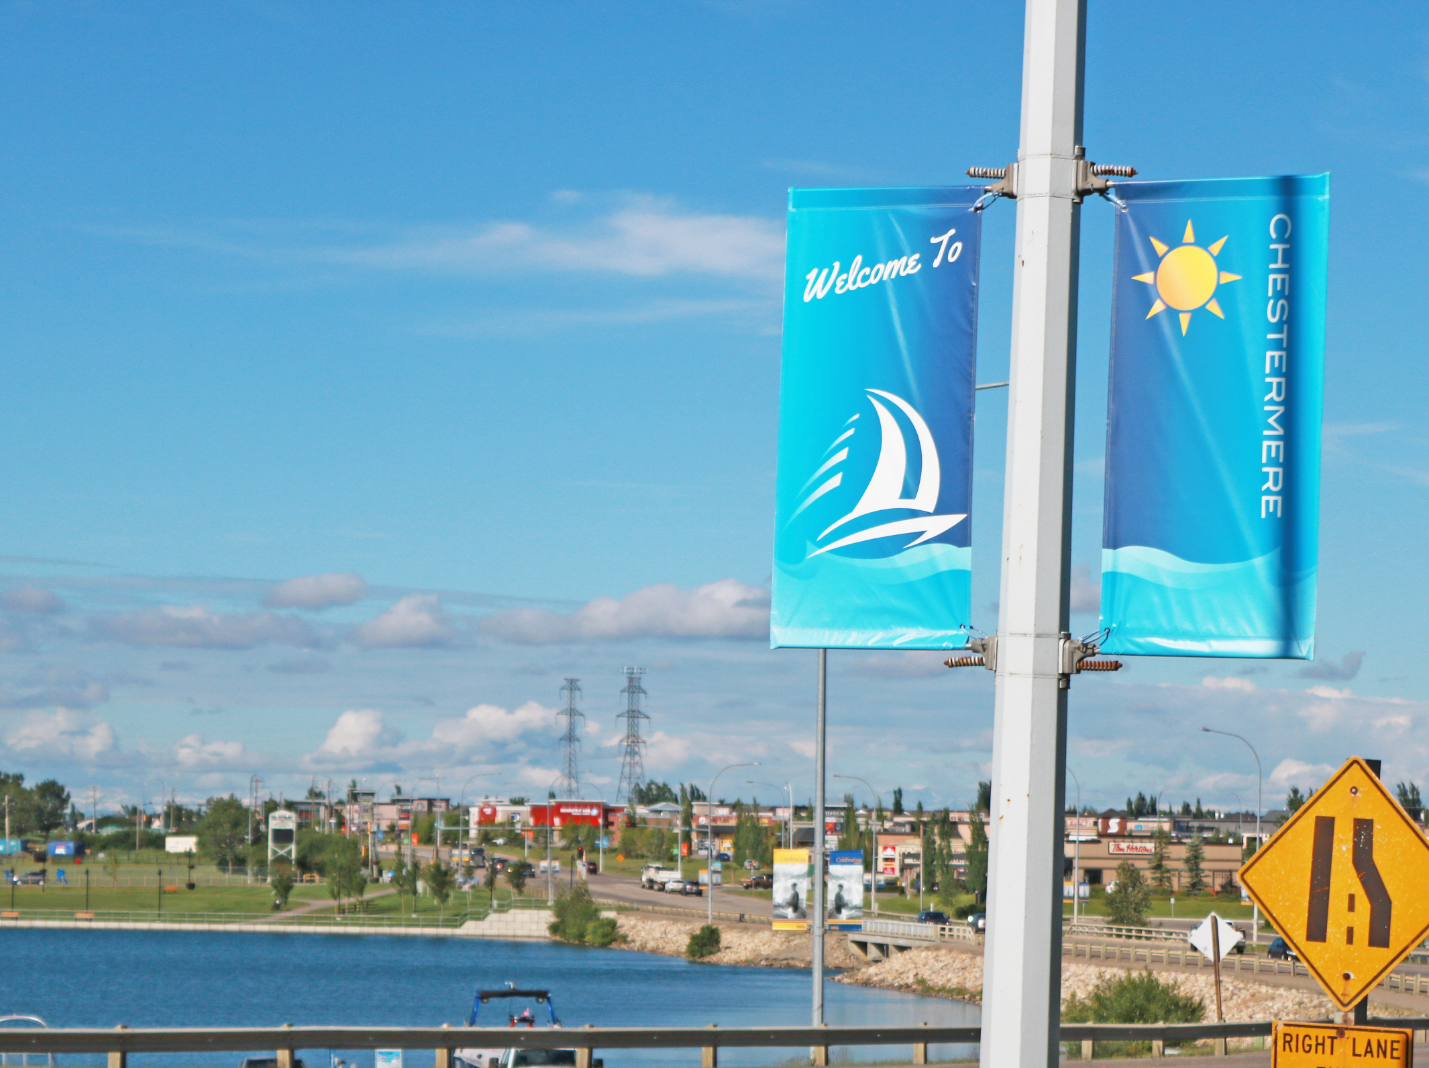 Chestermere, AB - Official Website